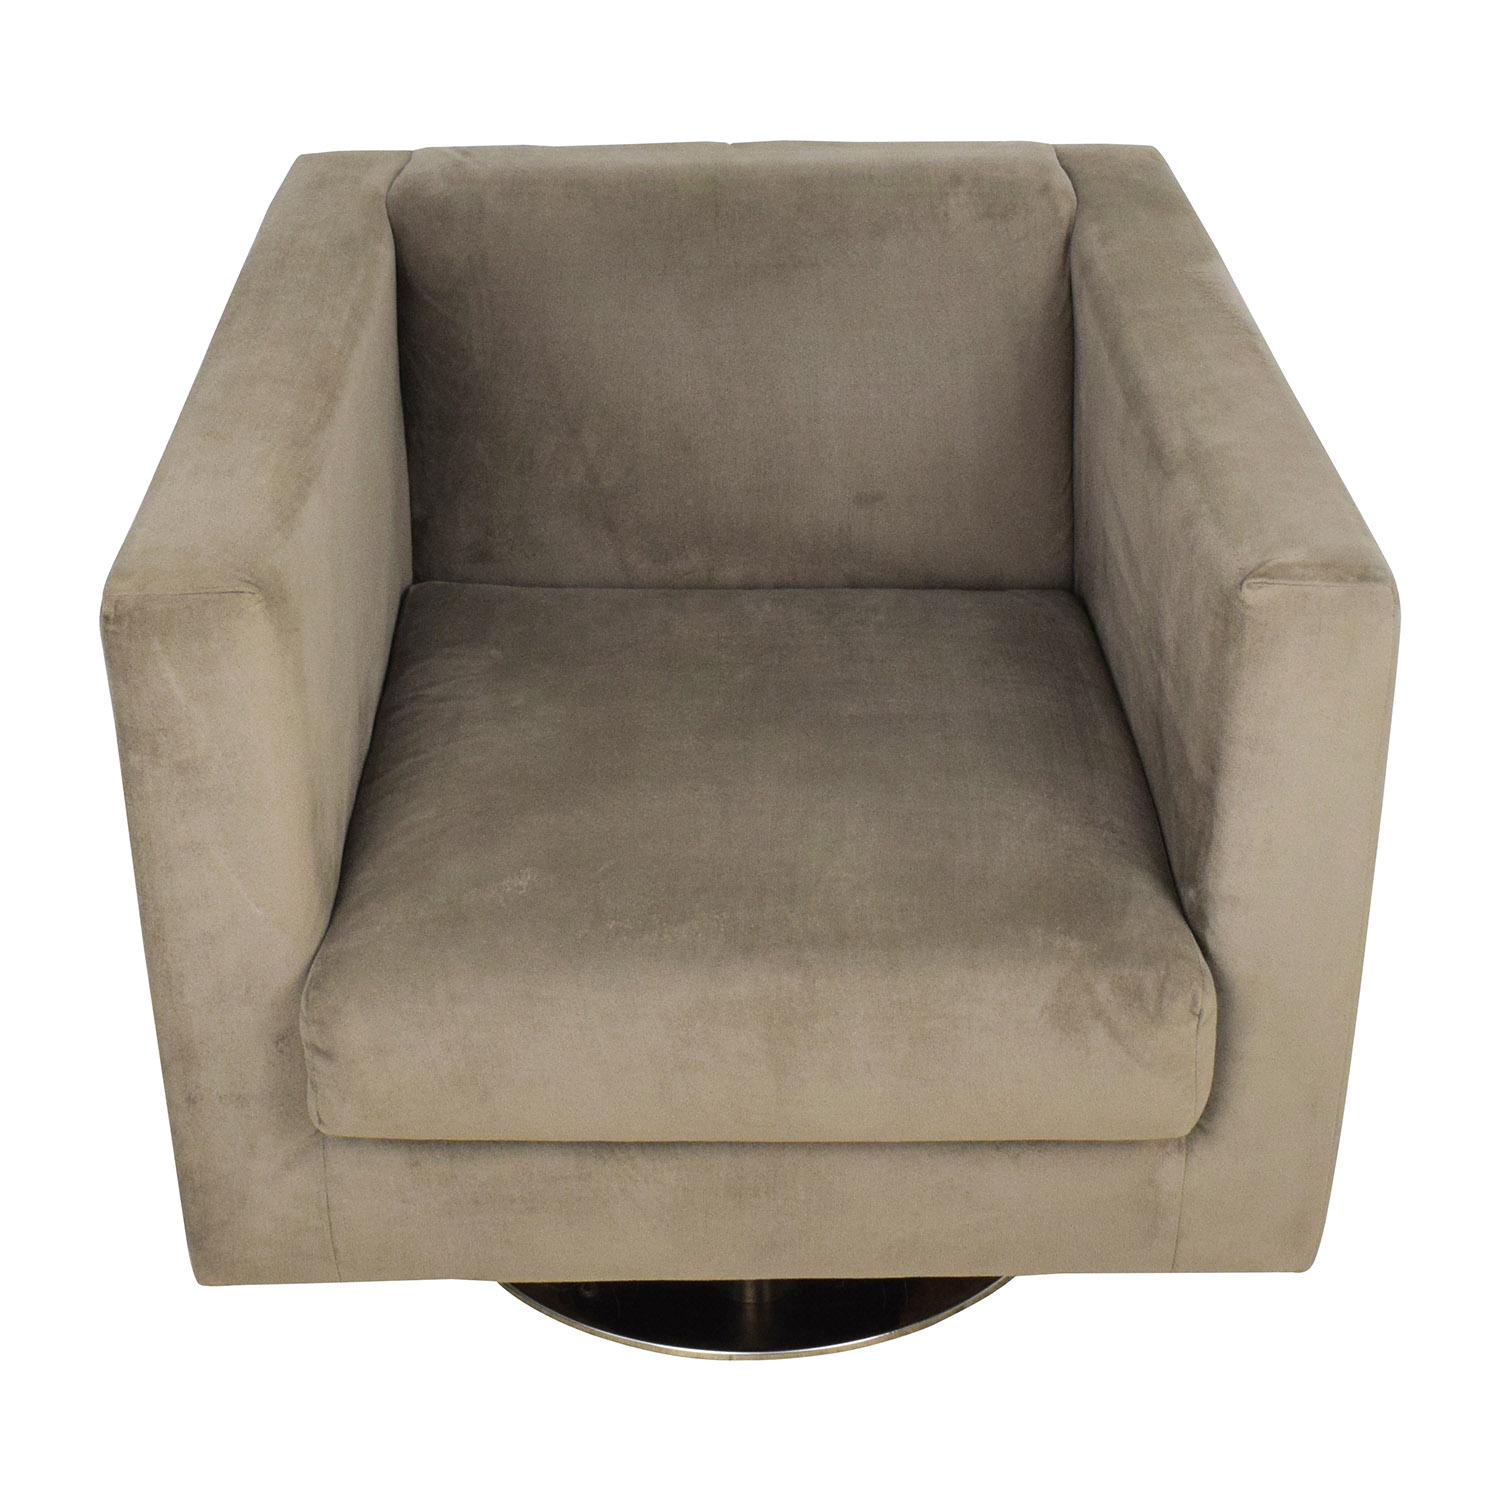 swivel chairs for sale royal blue velvet 88 off crate barrel clara brown rowe grey chair